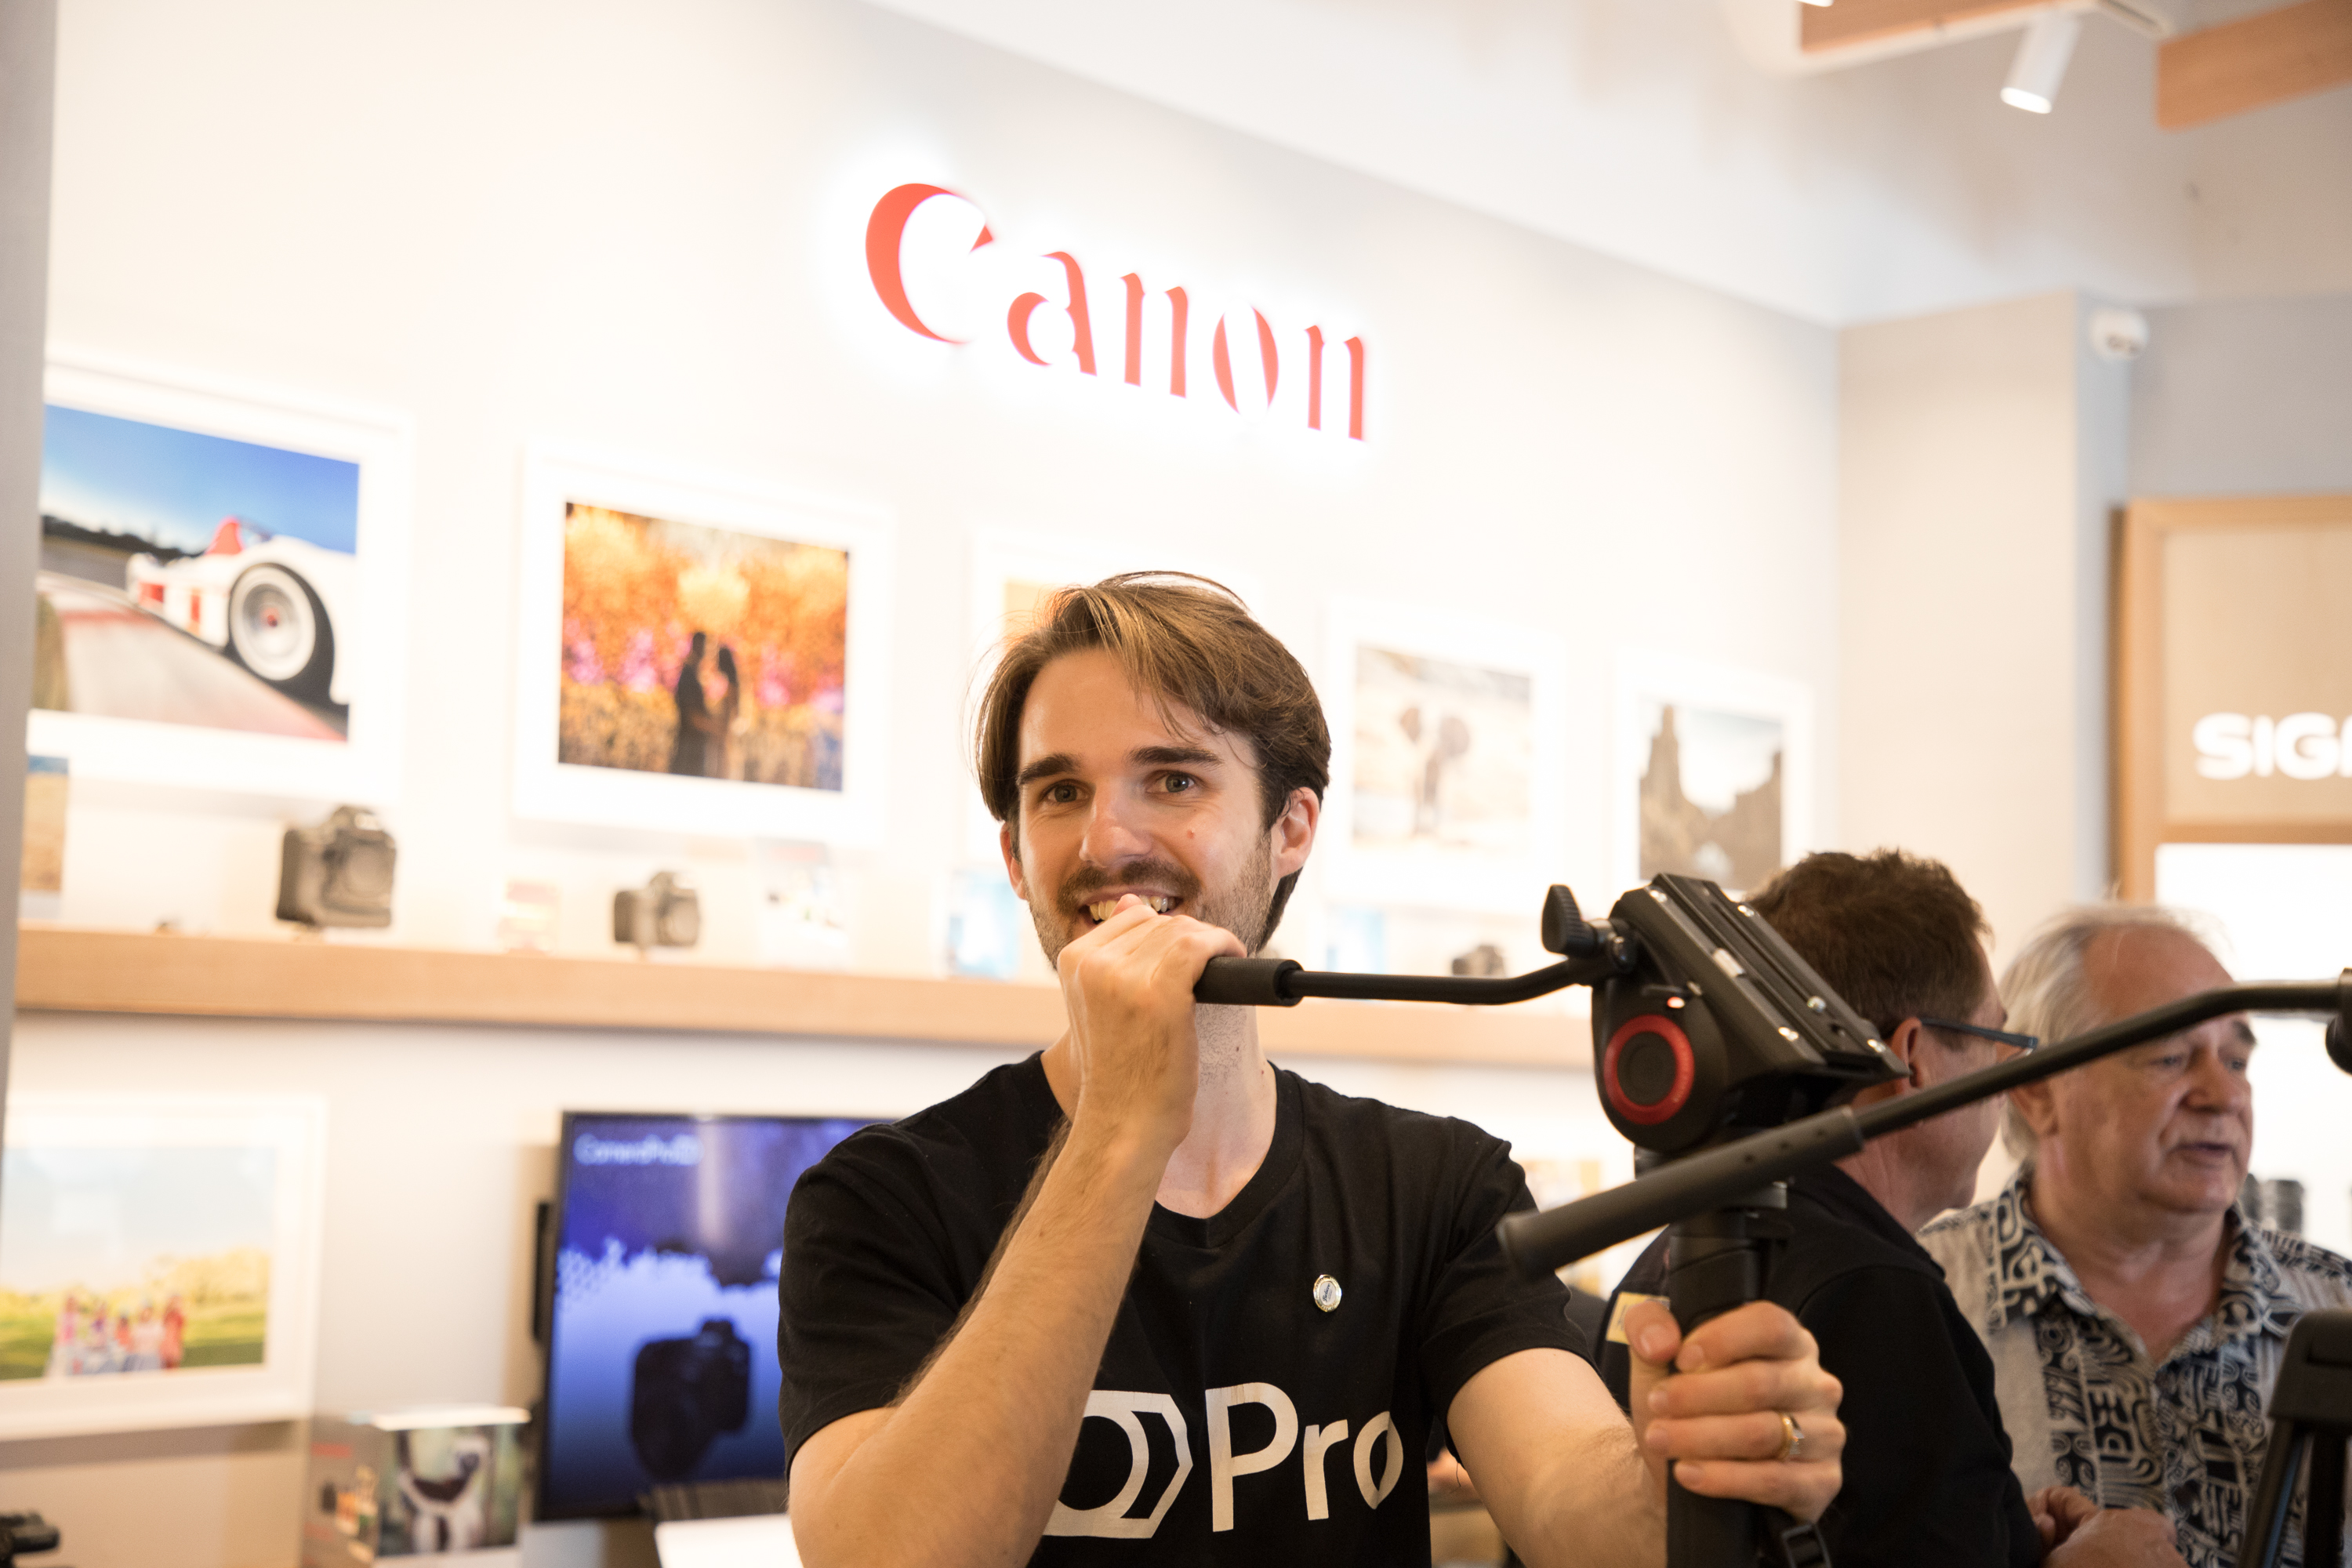 Bryce in CameraPro showroom